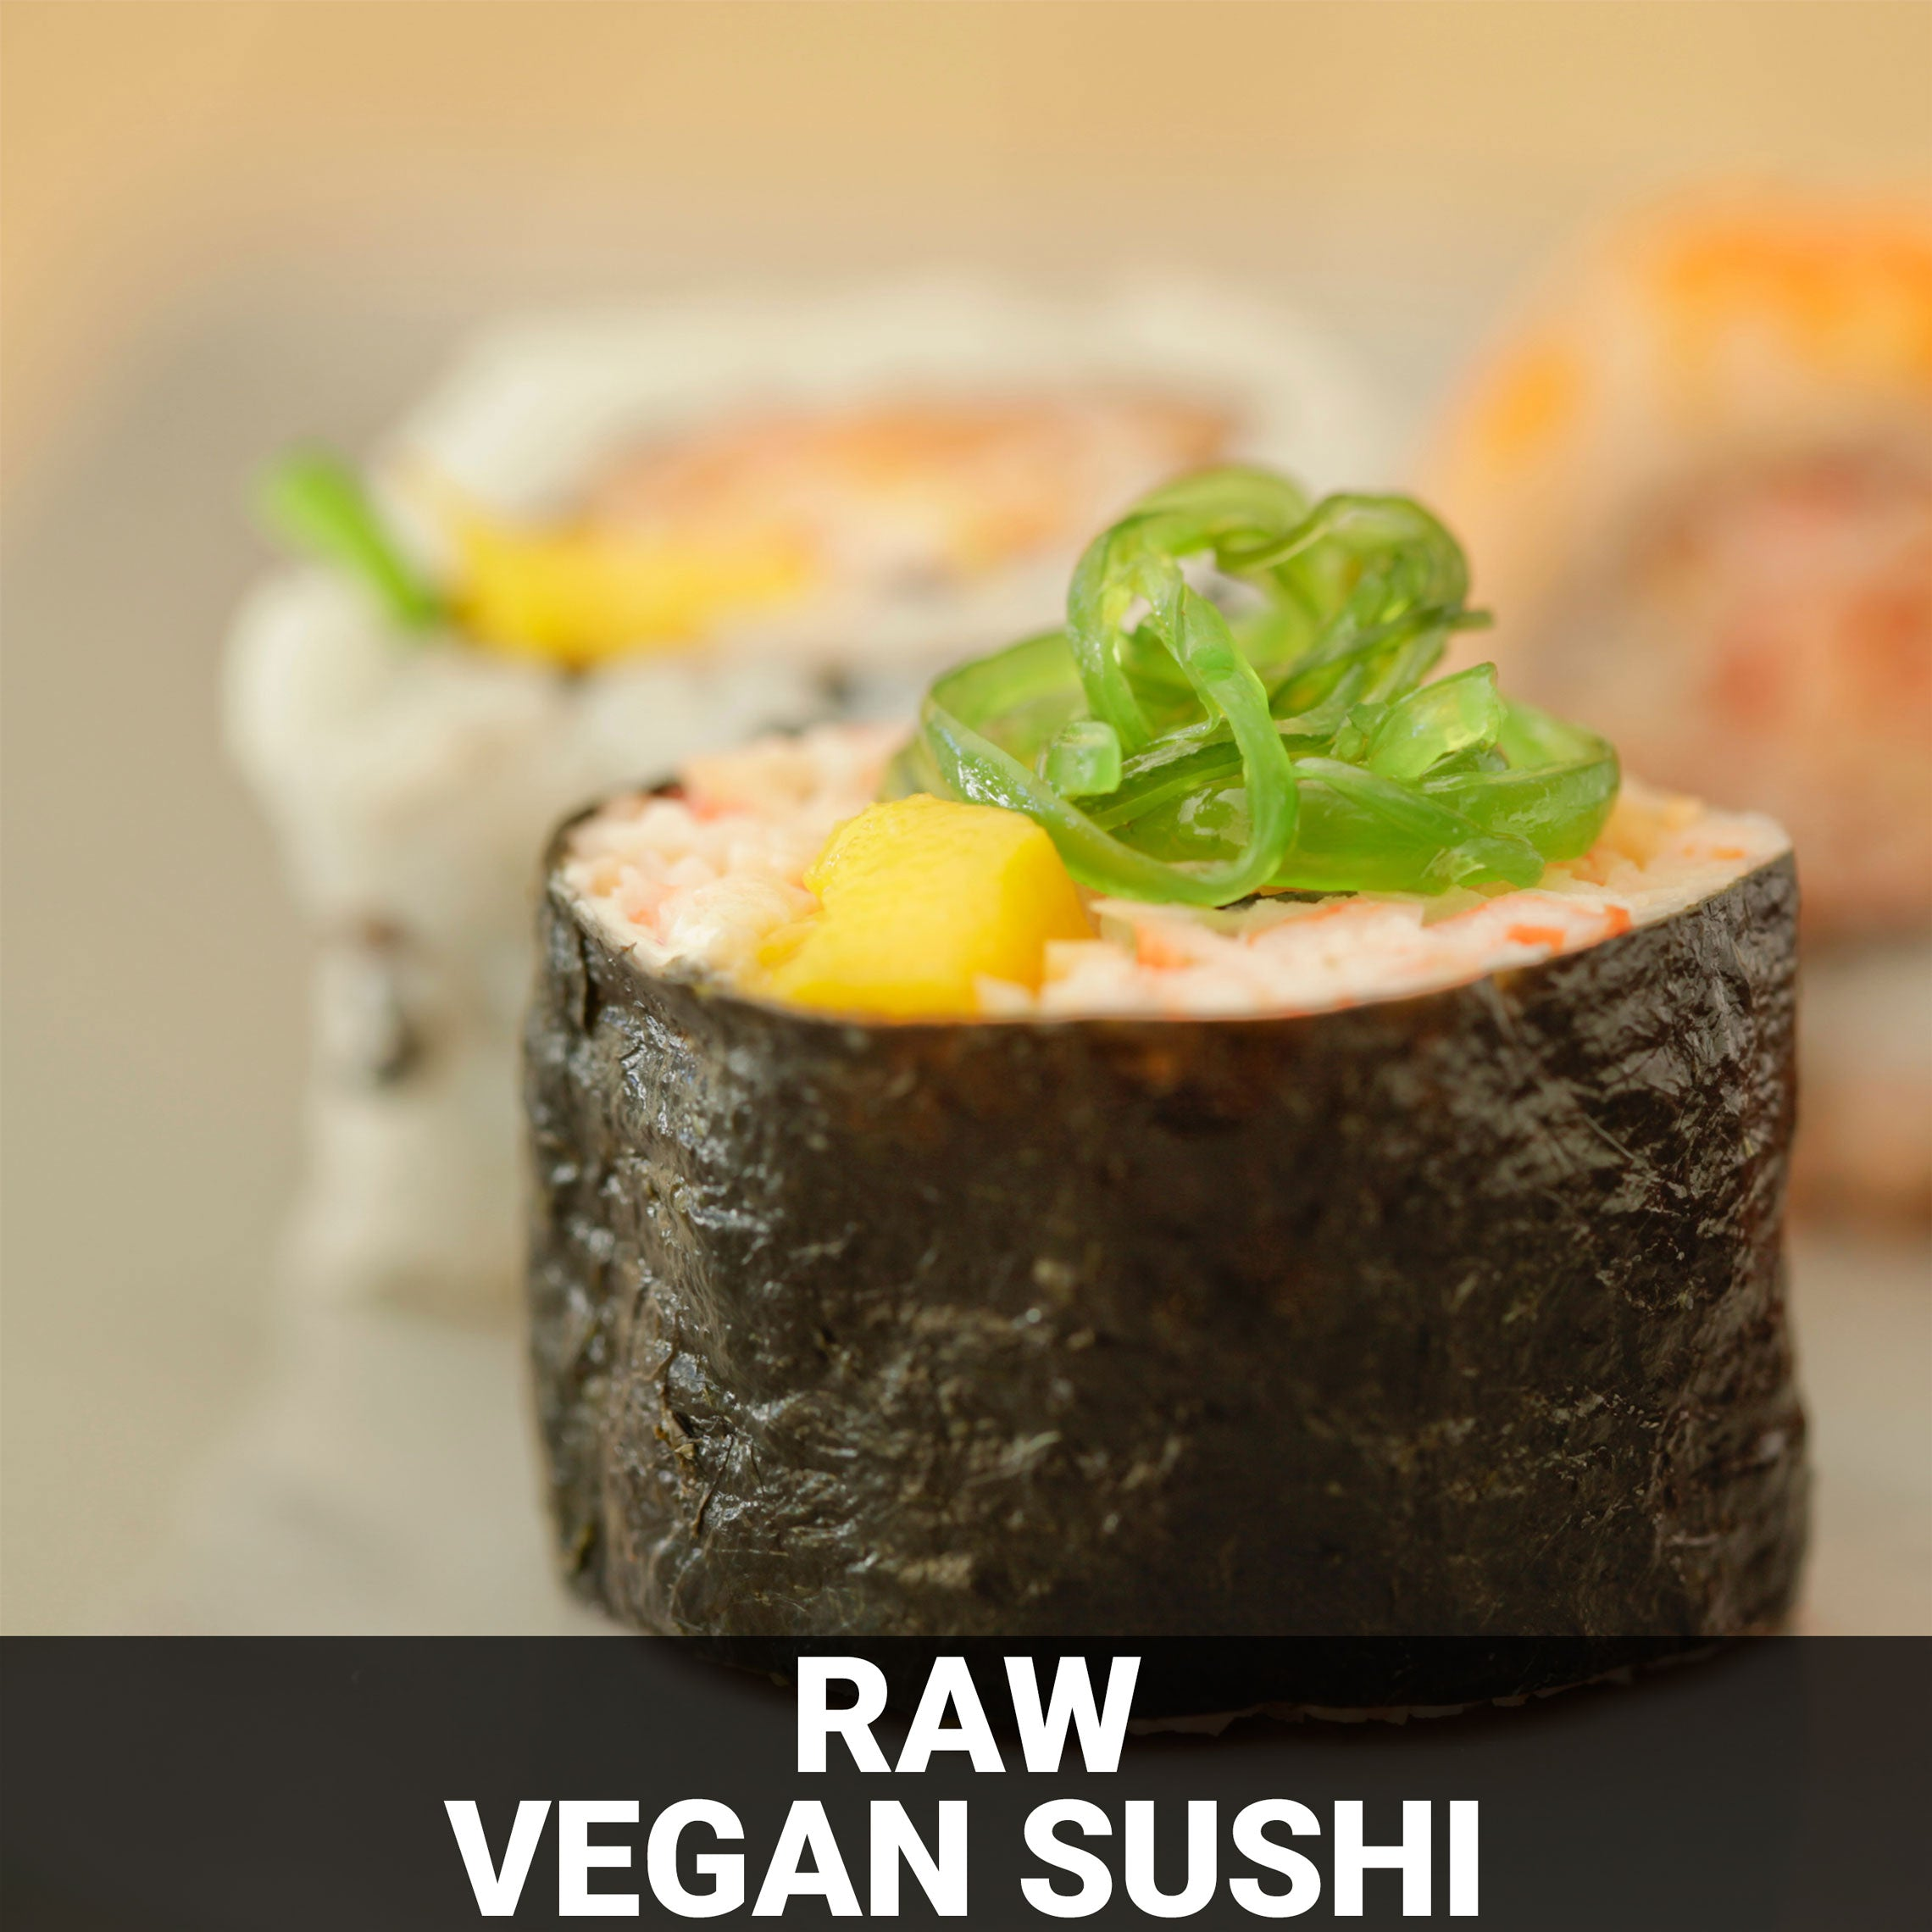 Raw Vegan Sushi Recipe - Foods Alive